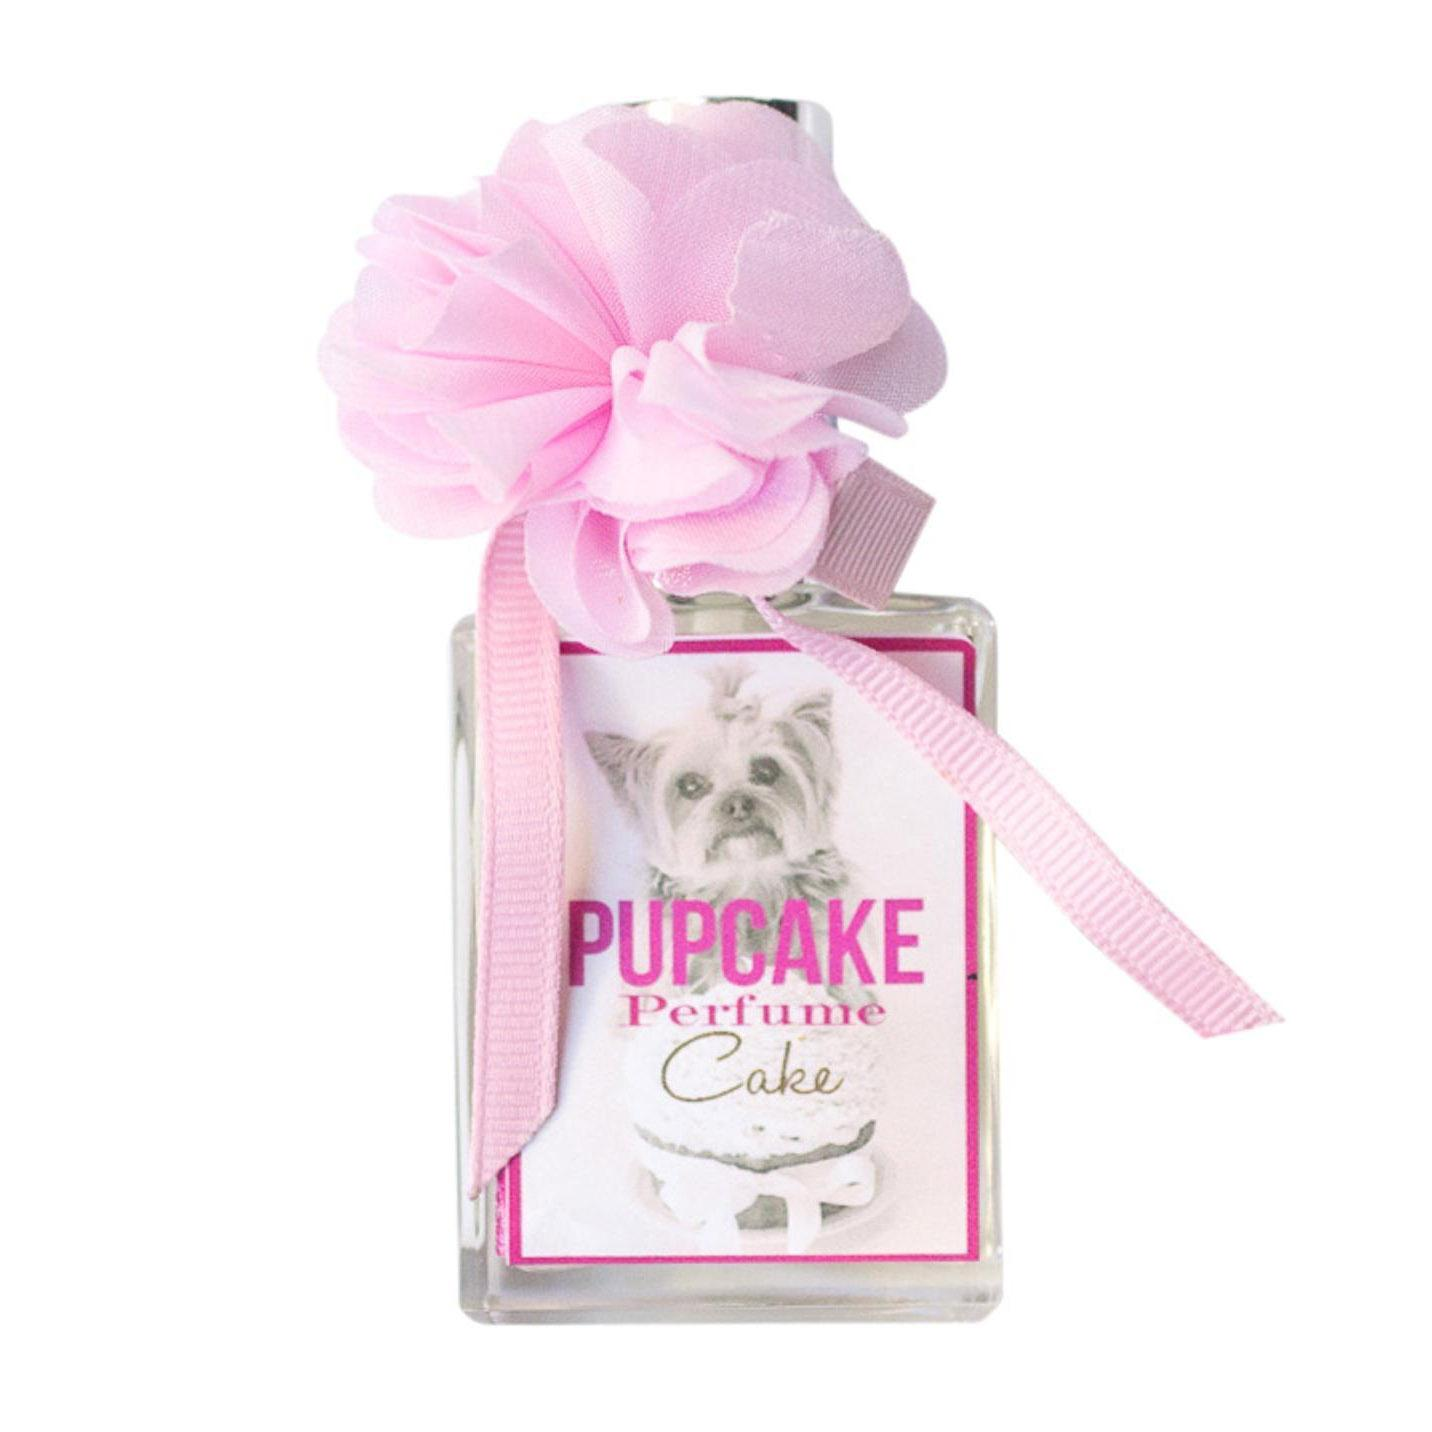 Pupcake Perfume for Dogs by The Dog Squad - Cake